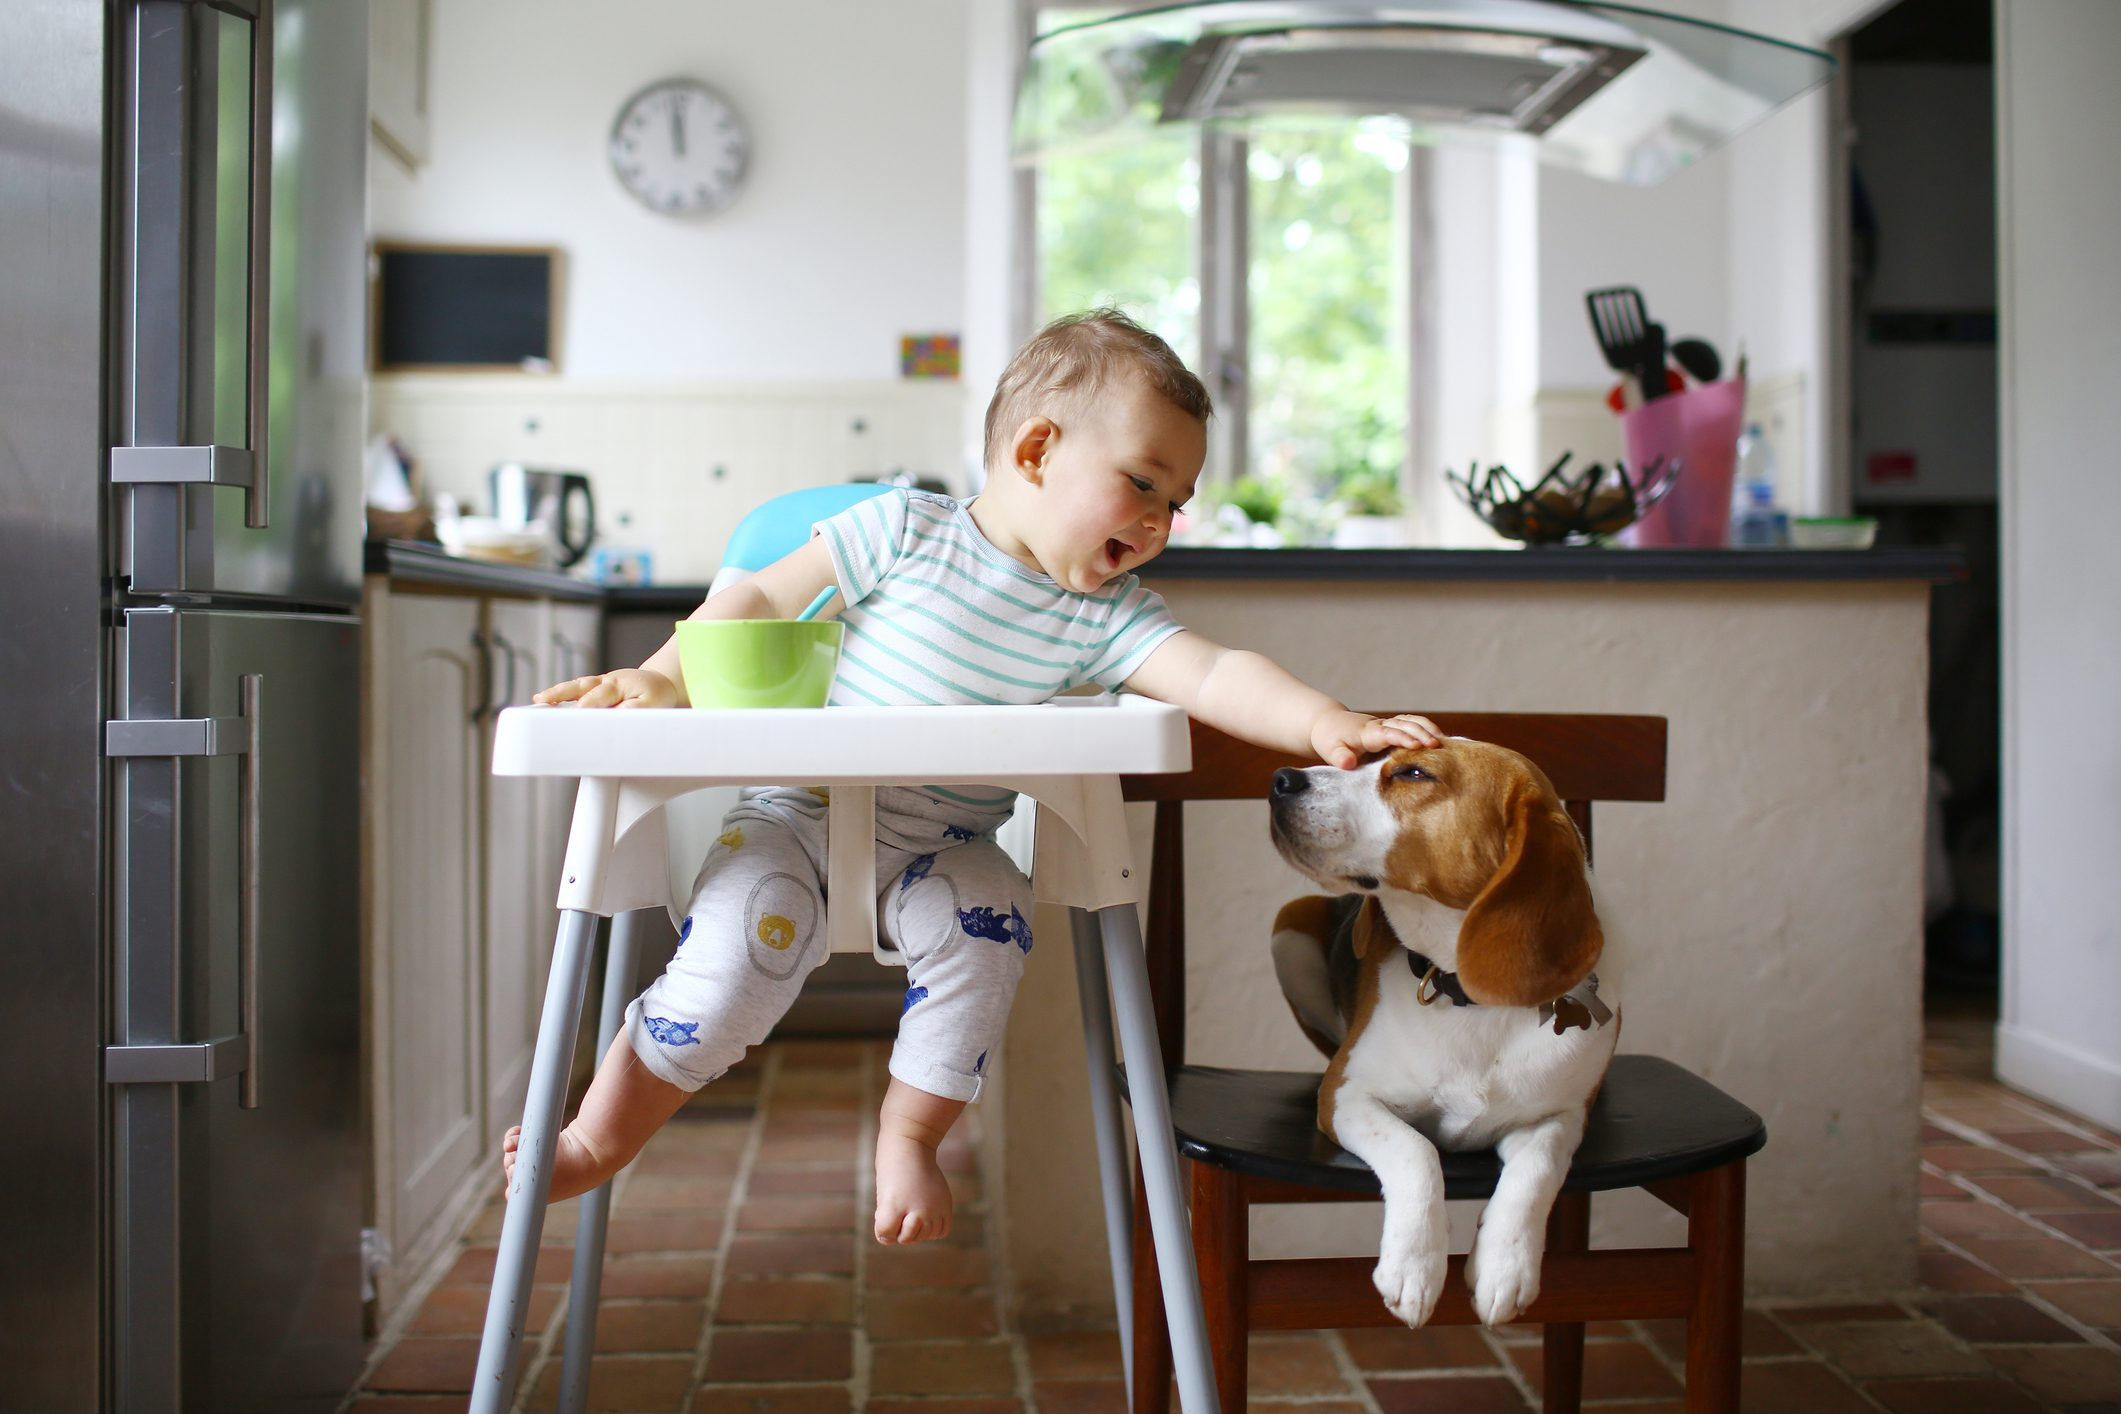 A 1 year old boy petting his dog in the kitchen